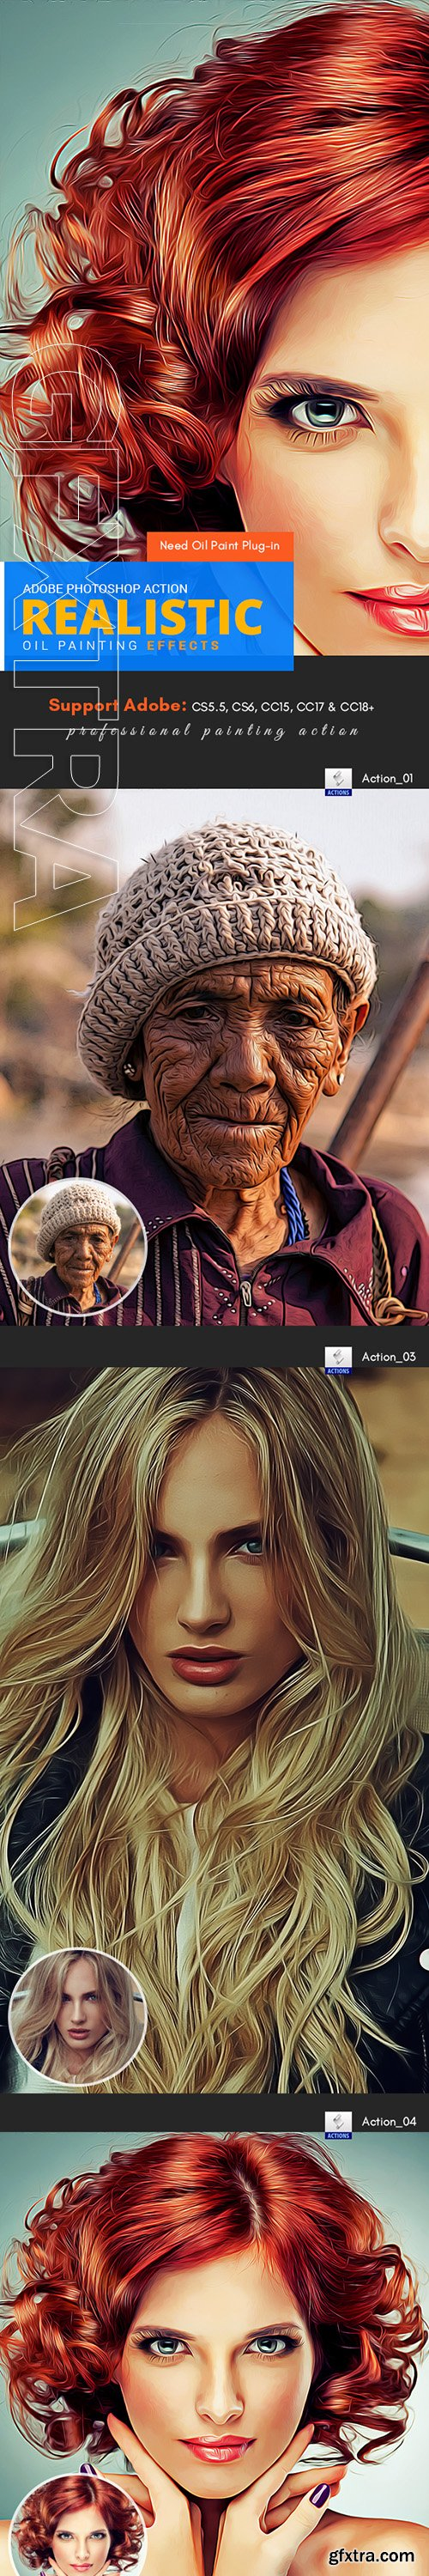 GraphicRiver - Realistic Oil Painting Action 22543625